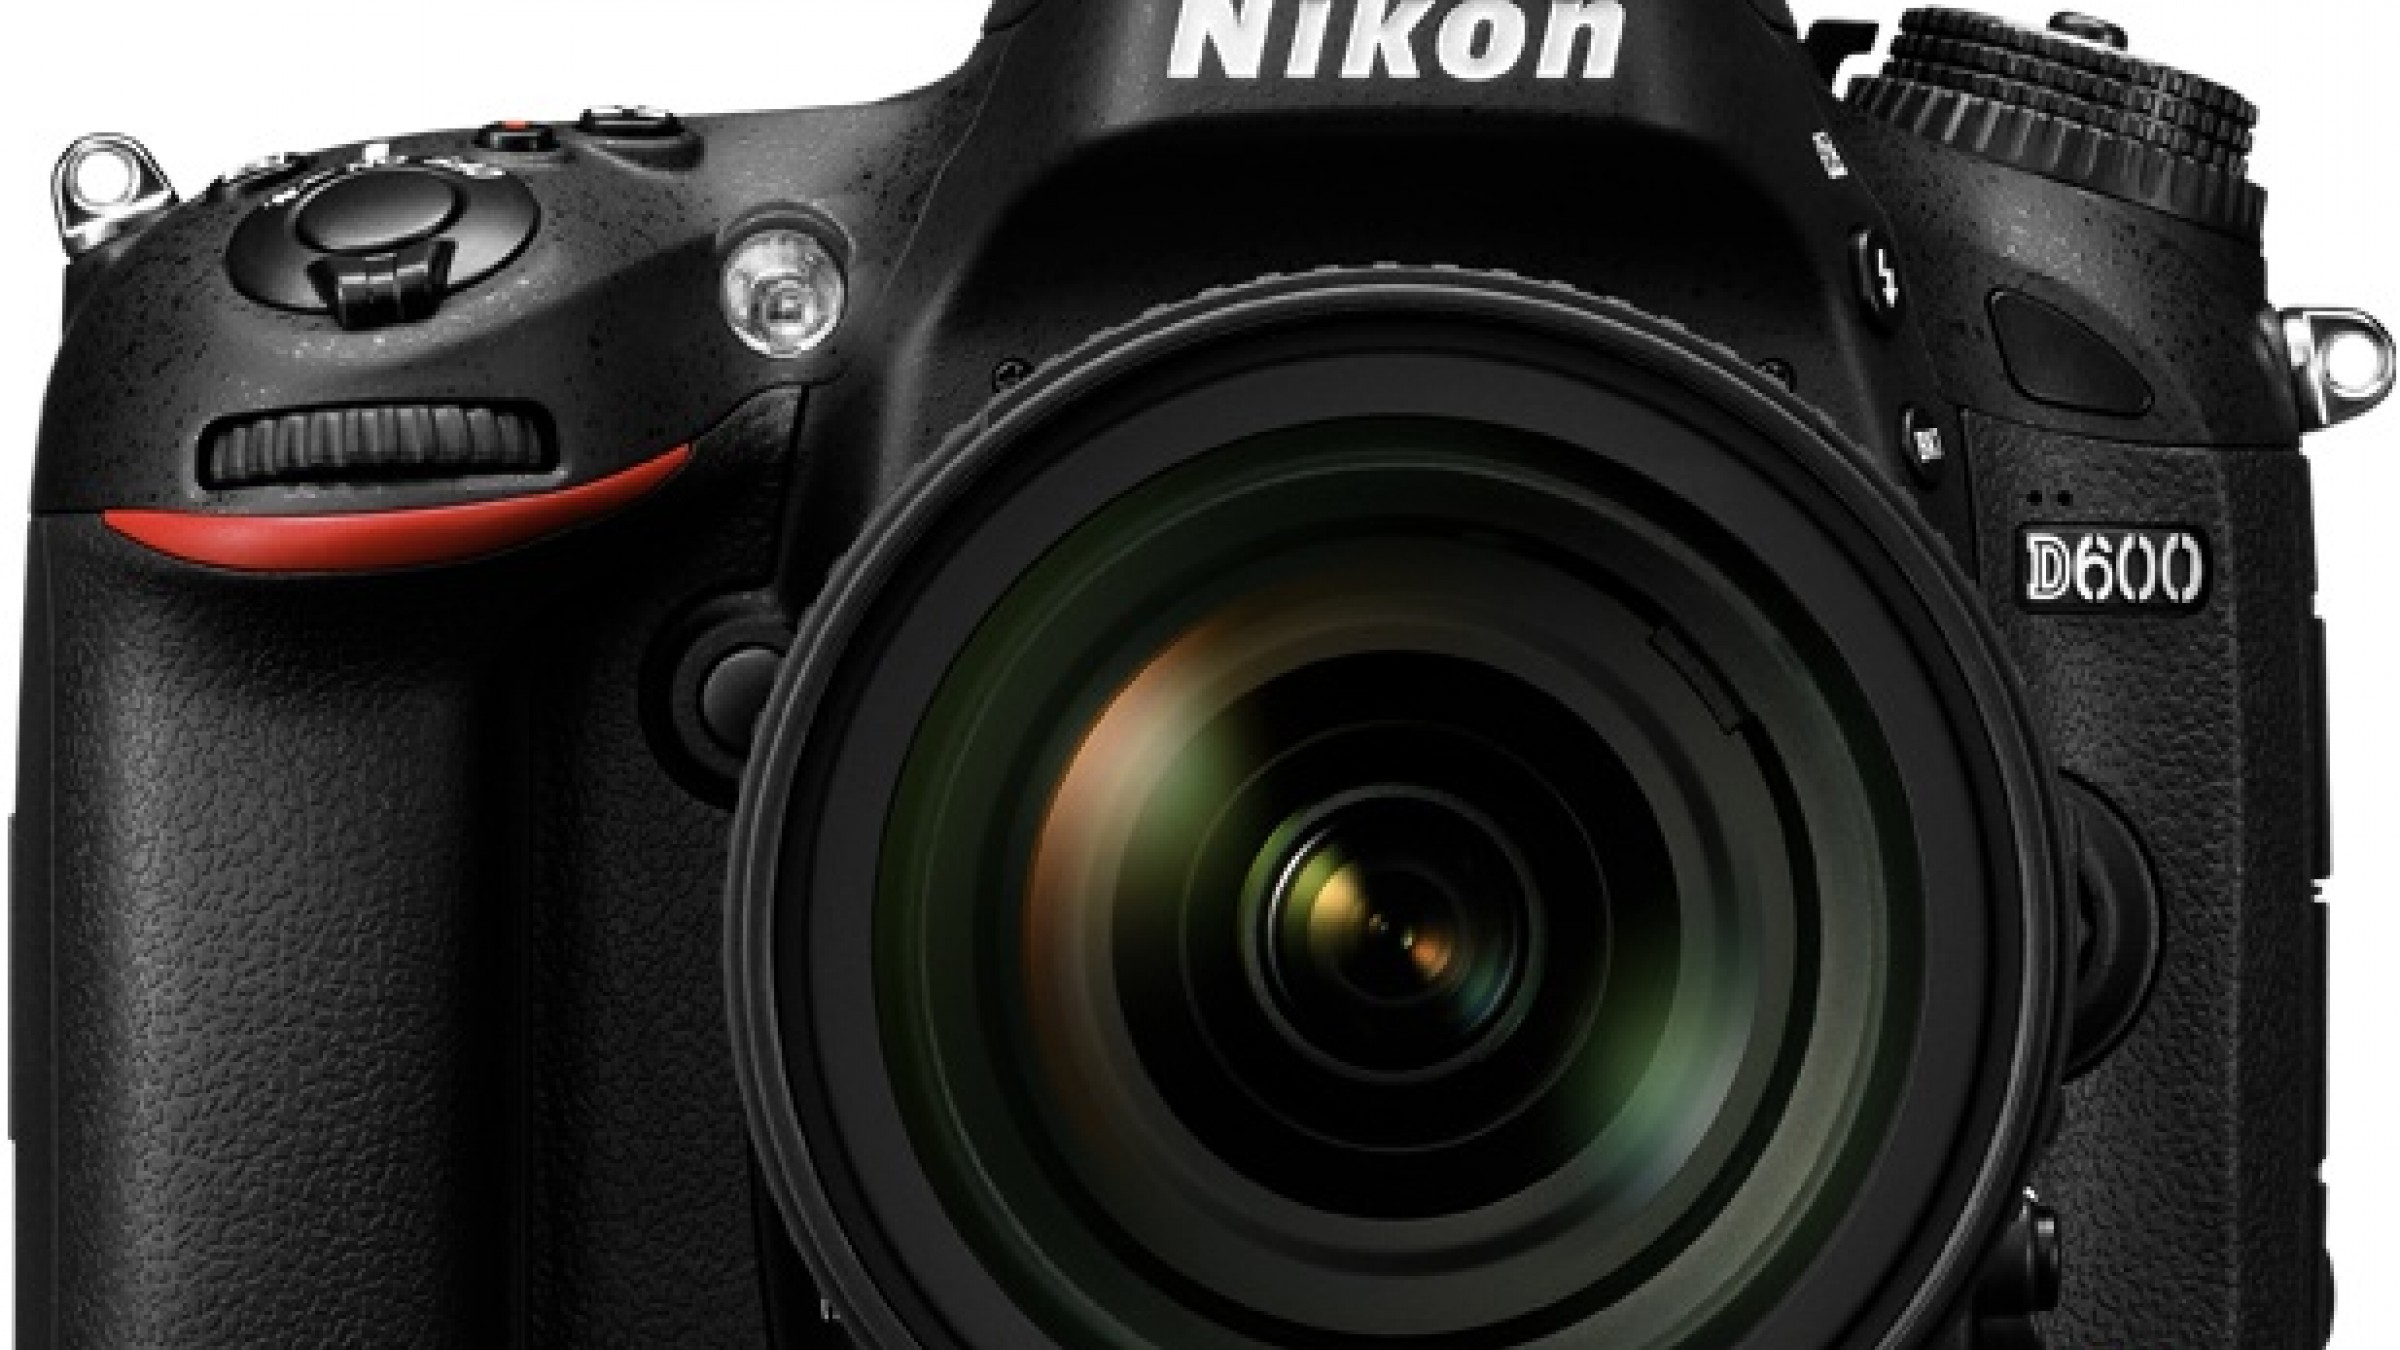 Nikon D600: Full-Frame DSLR with Uncompressed HDMI for $2100